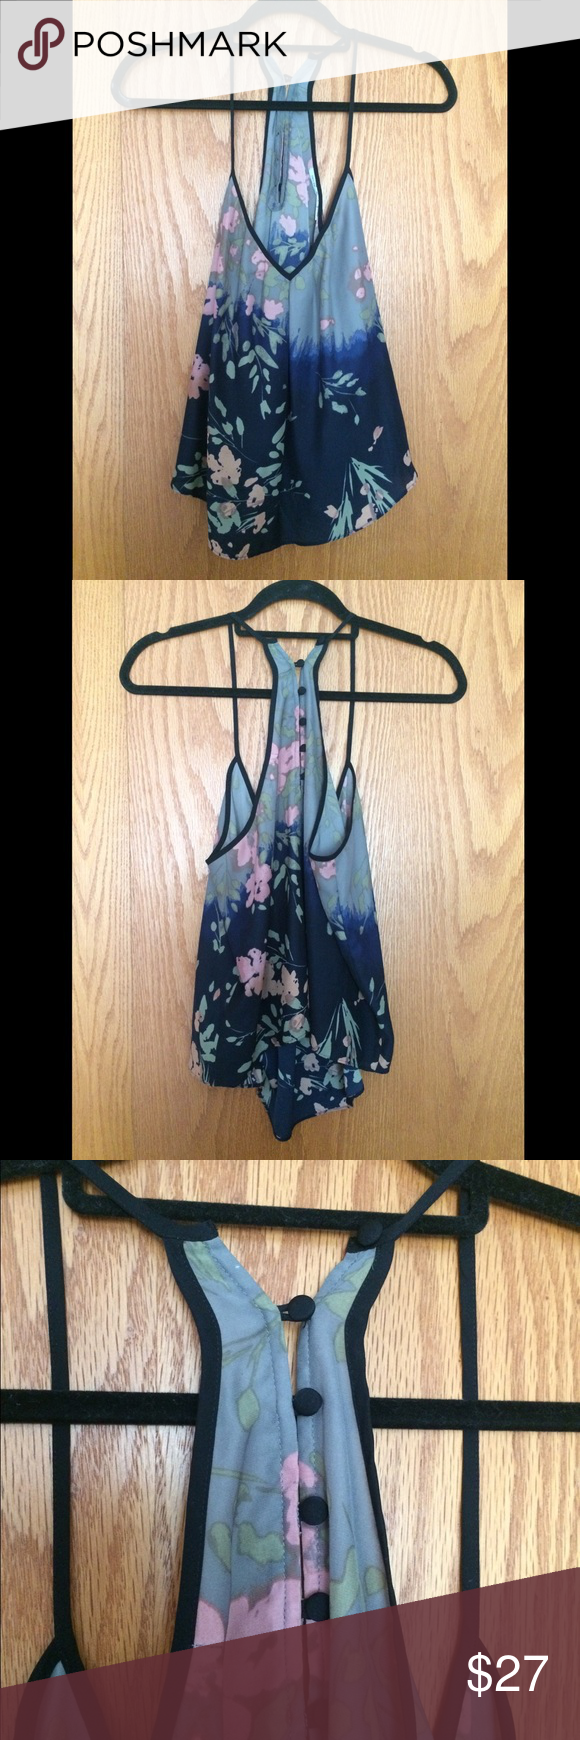 Kimchi Blue Boho Floral Tank - M Kimchi Blue boho floral tank with low v front, racer style back and a-line hi/lo hem. Missing one button loop at back but does not detract from the garment. Like new otherwise. Size M. Kimchi Blue Tops Tank Tops